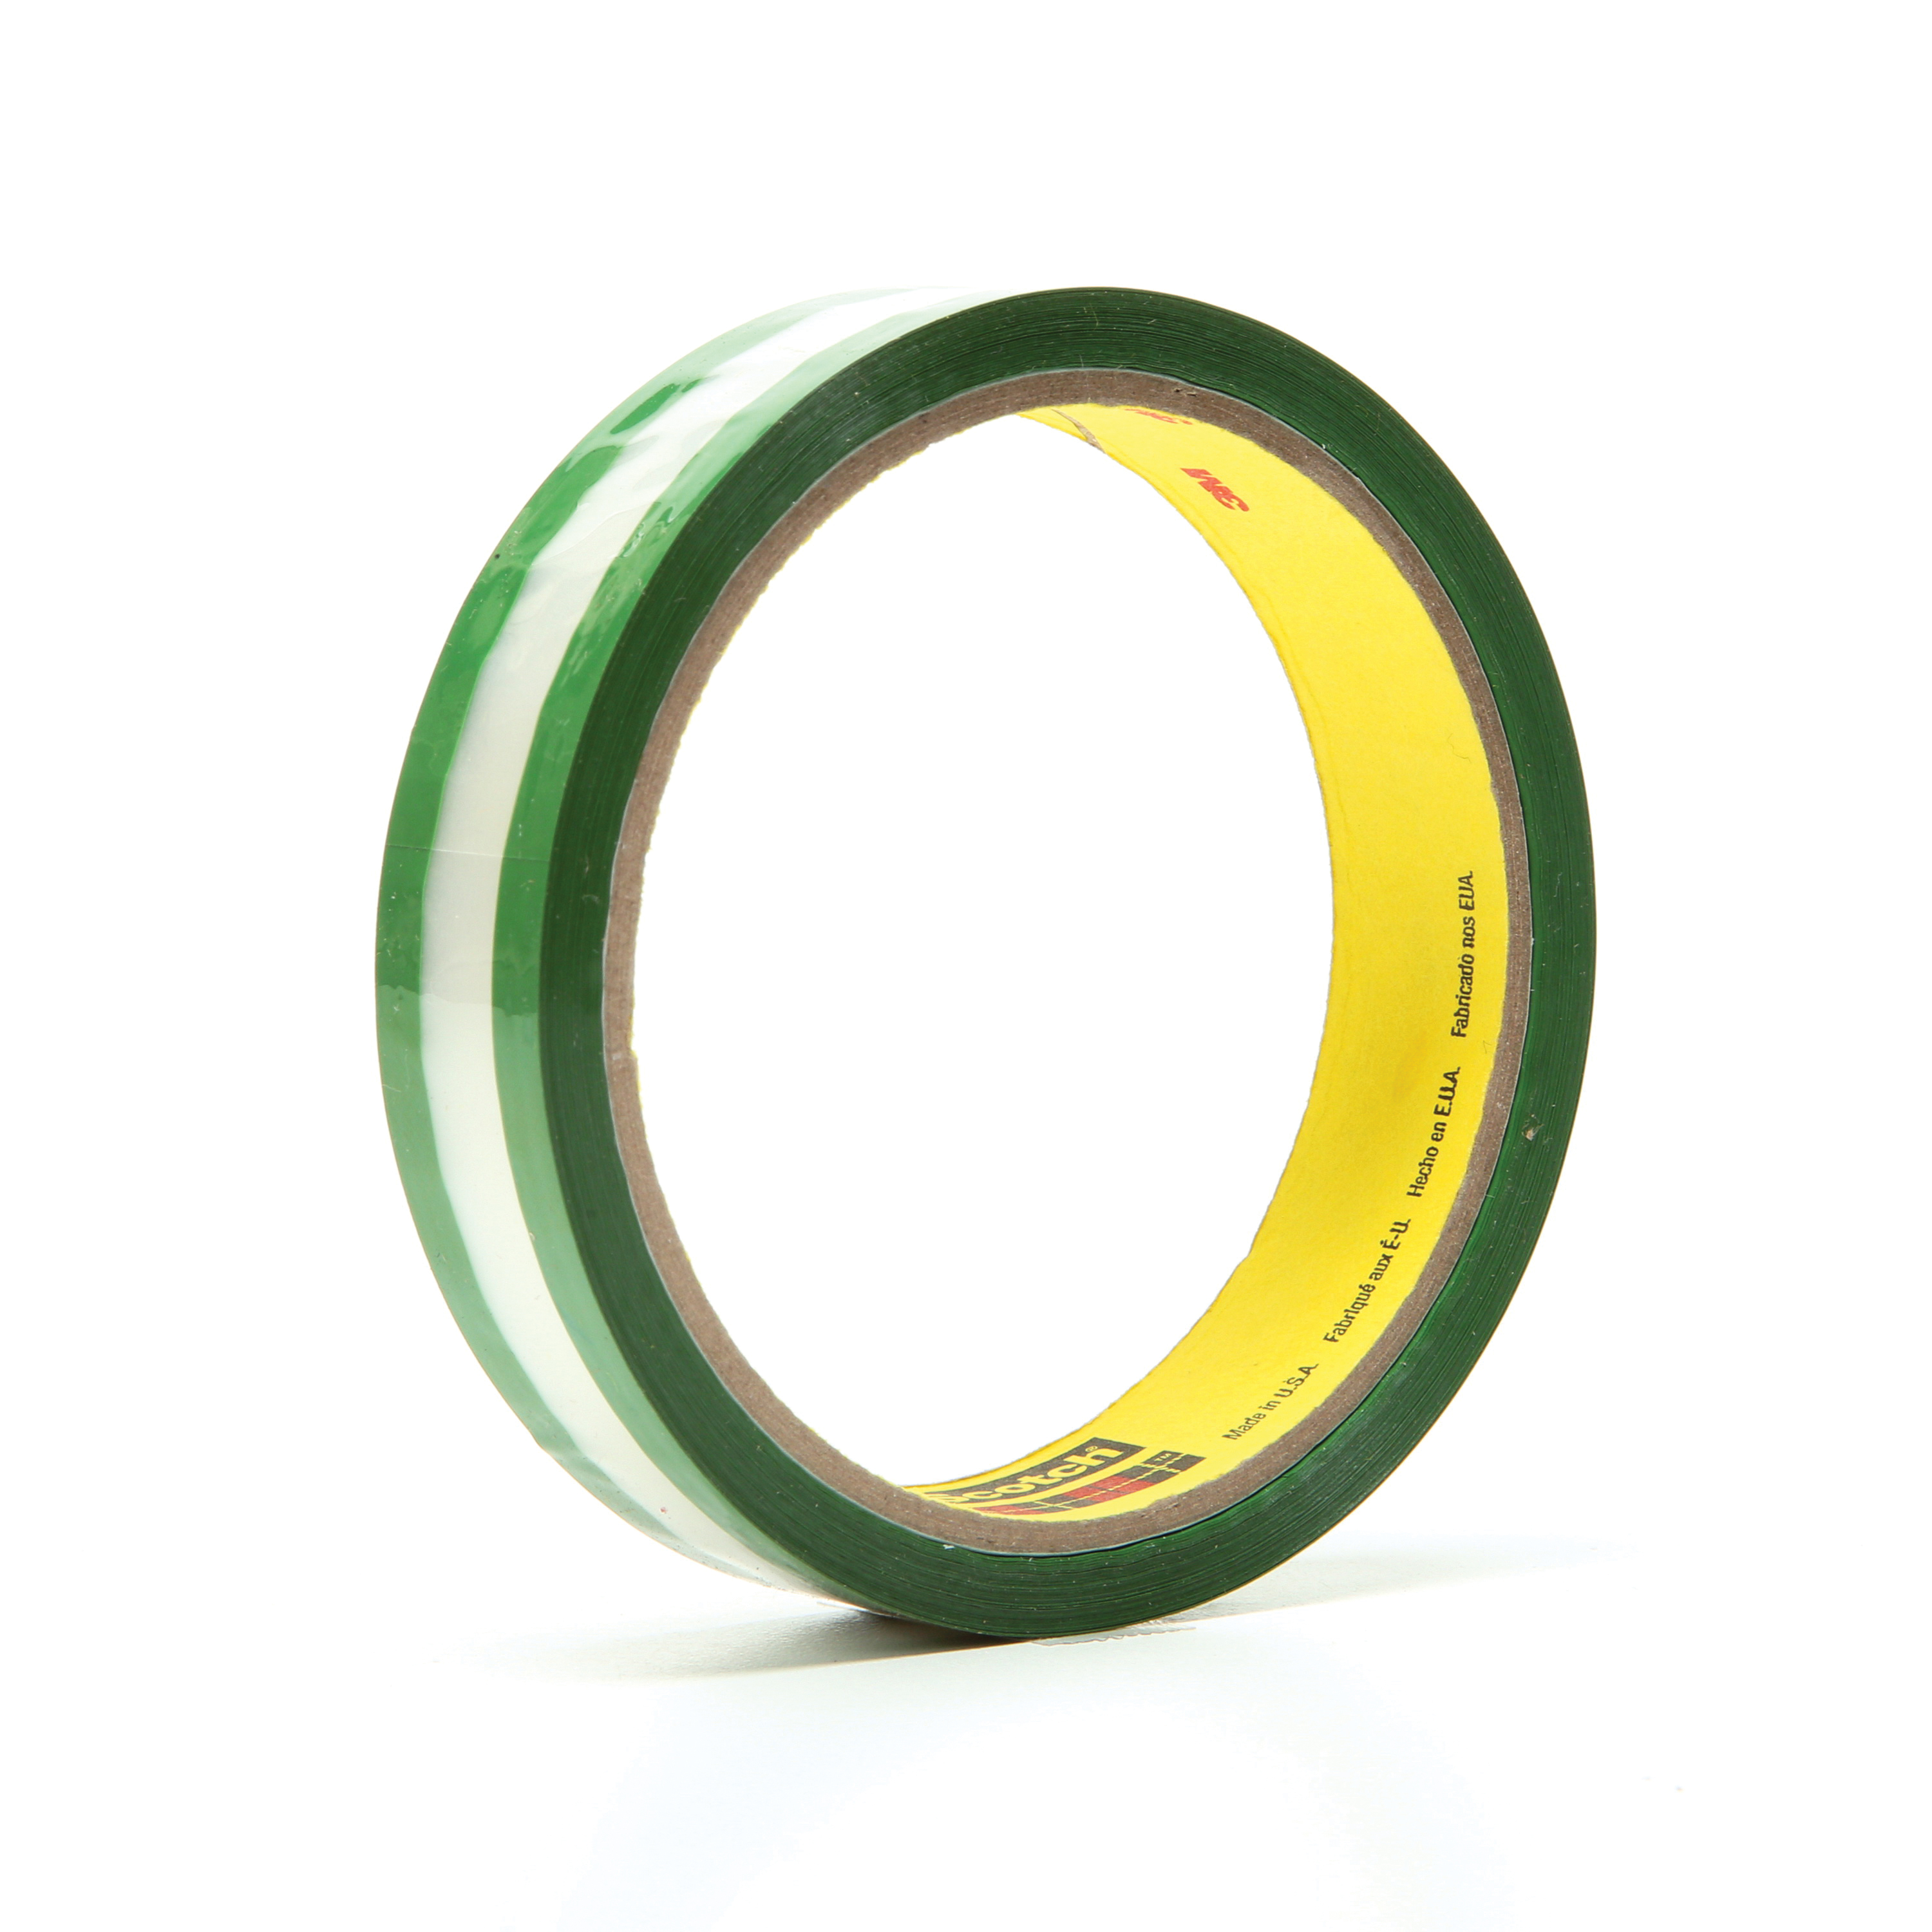 3M™ 021200-03507 Riveters Film Tape, 36 yd L x 3/4 in W, 1.7 mil THK, Rubber Adhesive, Transparent Polyester Backing, Green